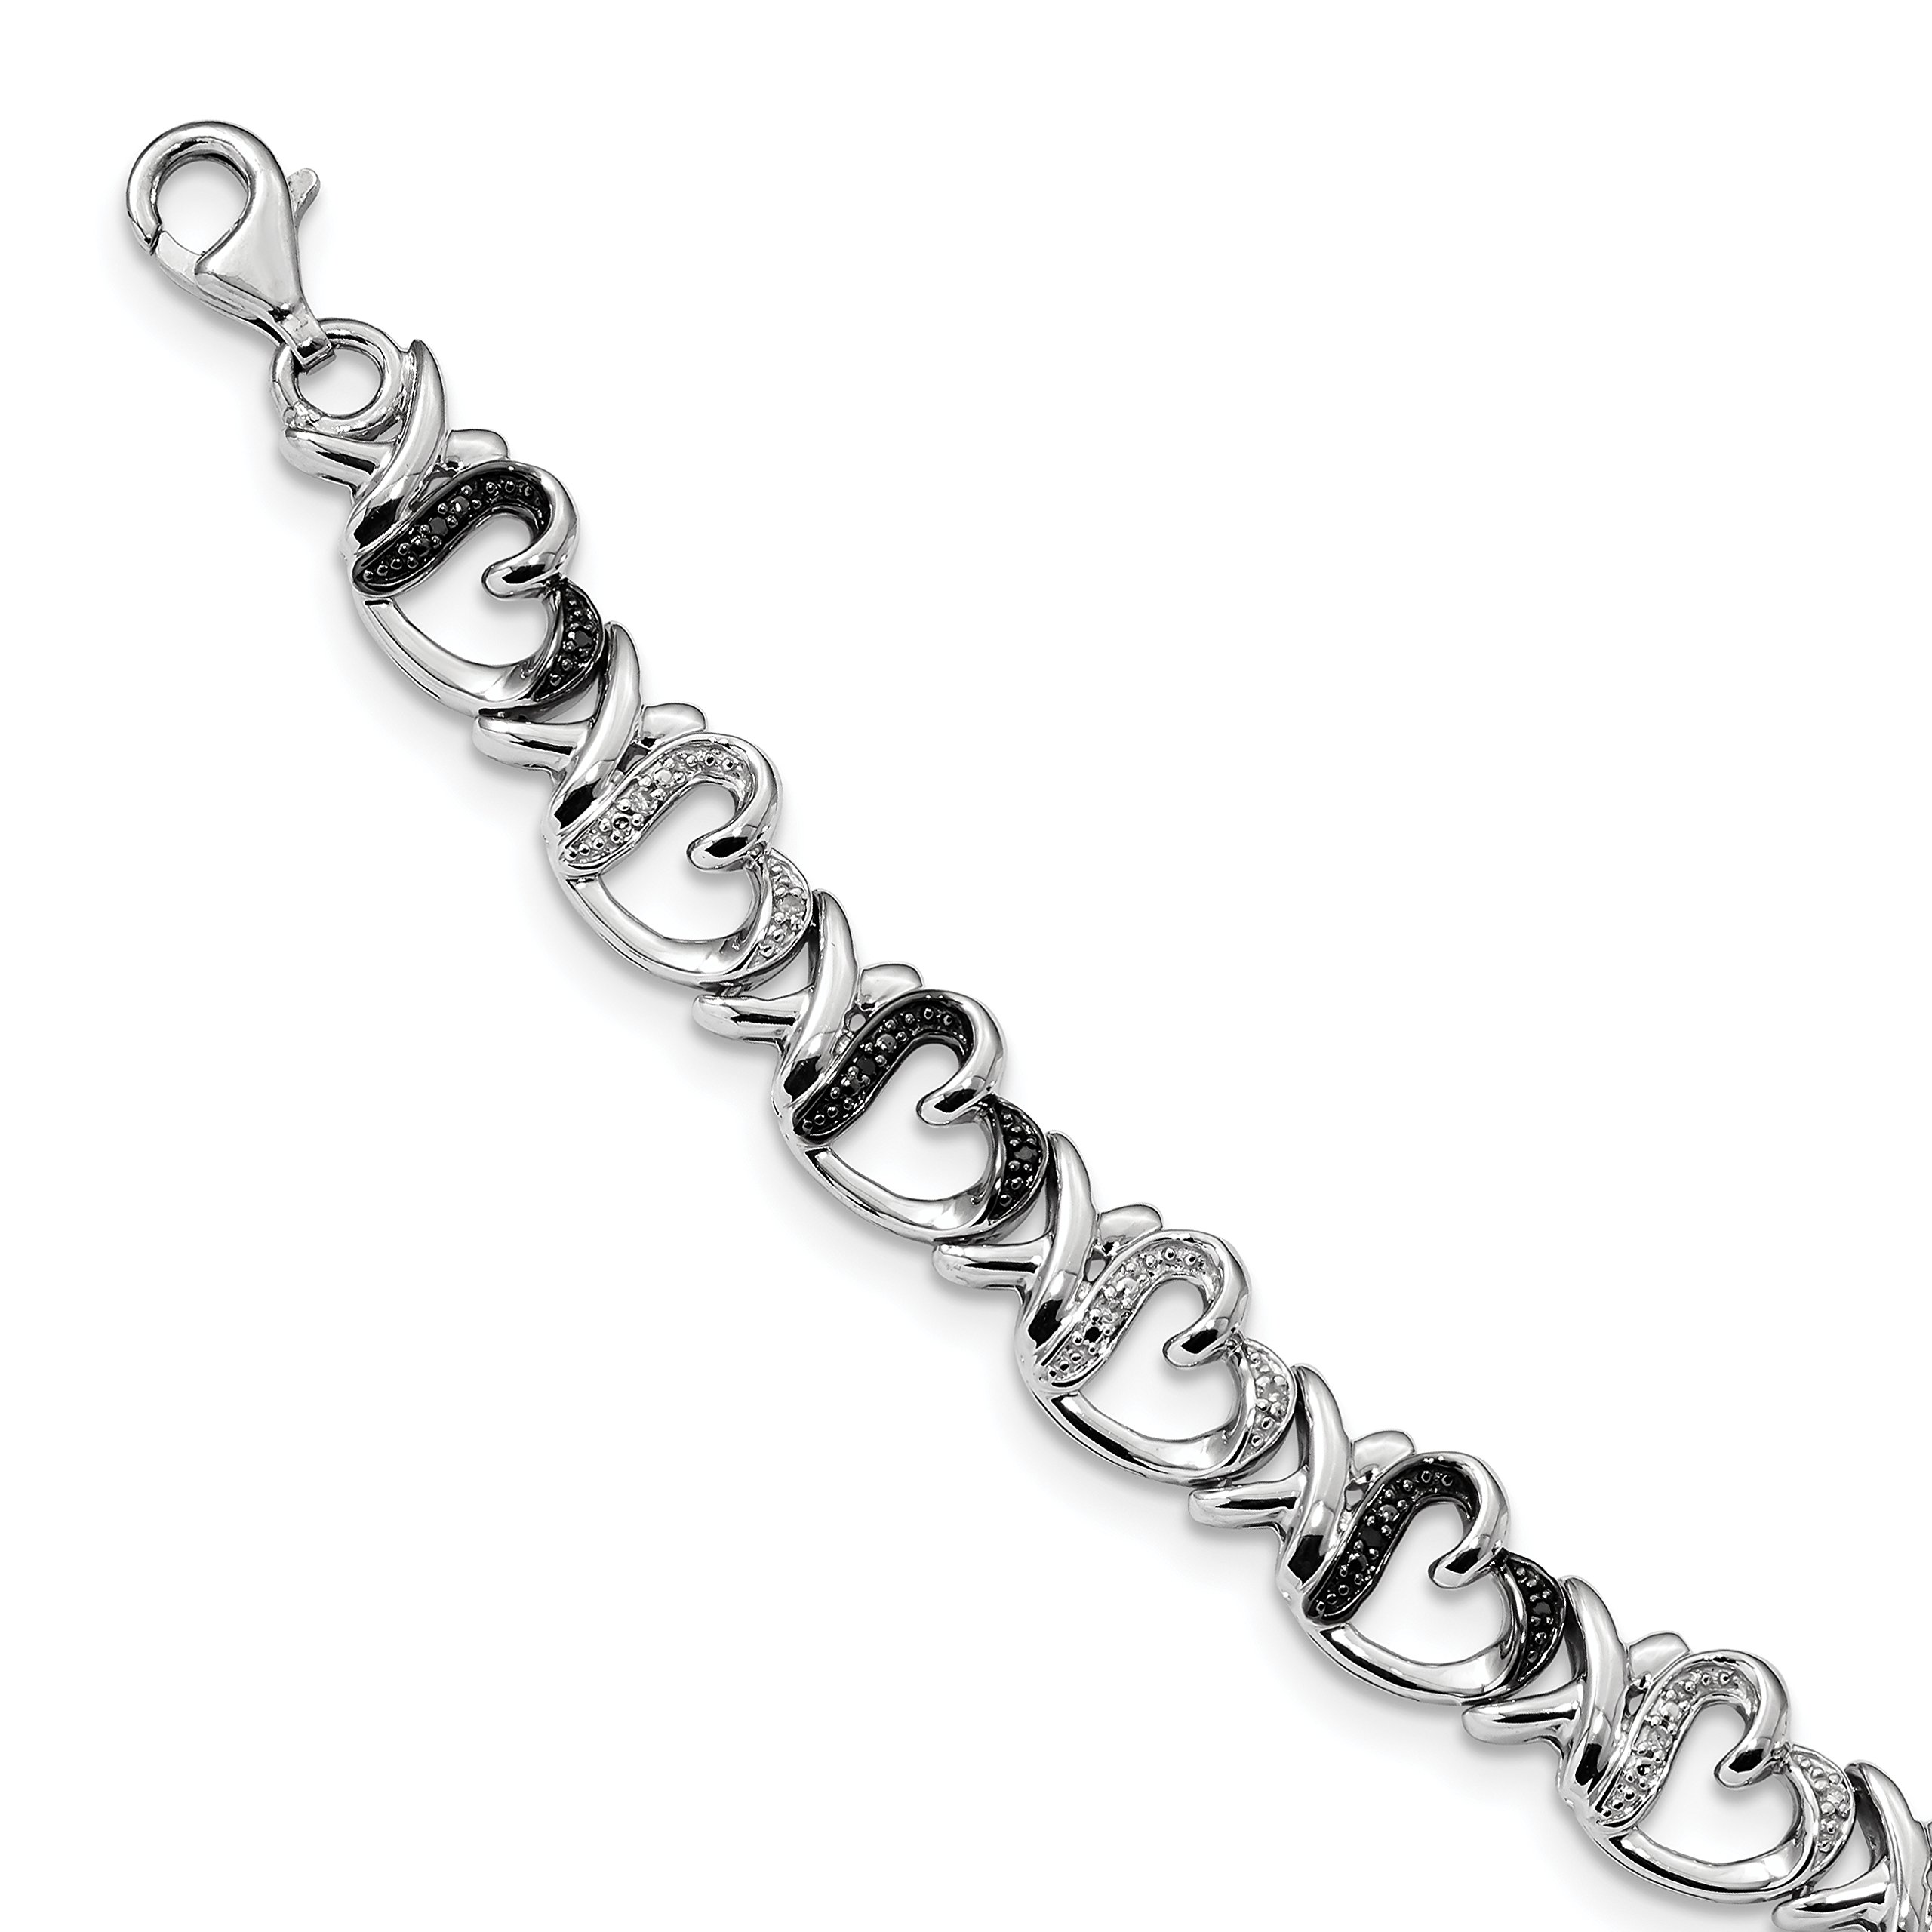 ICE CARATS 925 Sterling Silver Black White Diamond Bracelet 7.5 Inch /love Fine Jewelry Gift Set For Women Heart by ICE CARATS (Image #1)